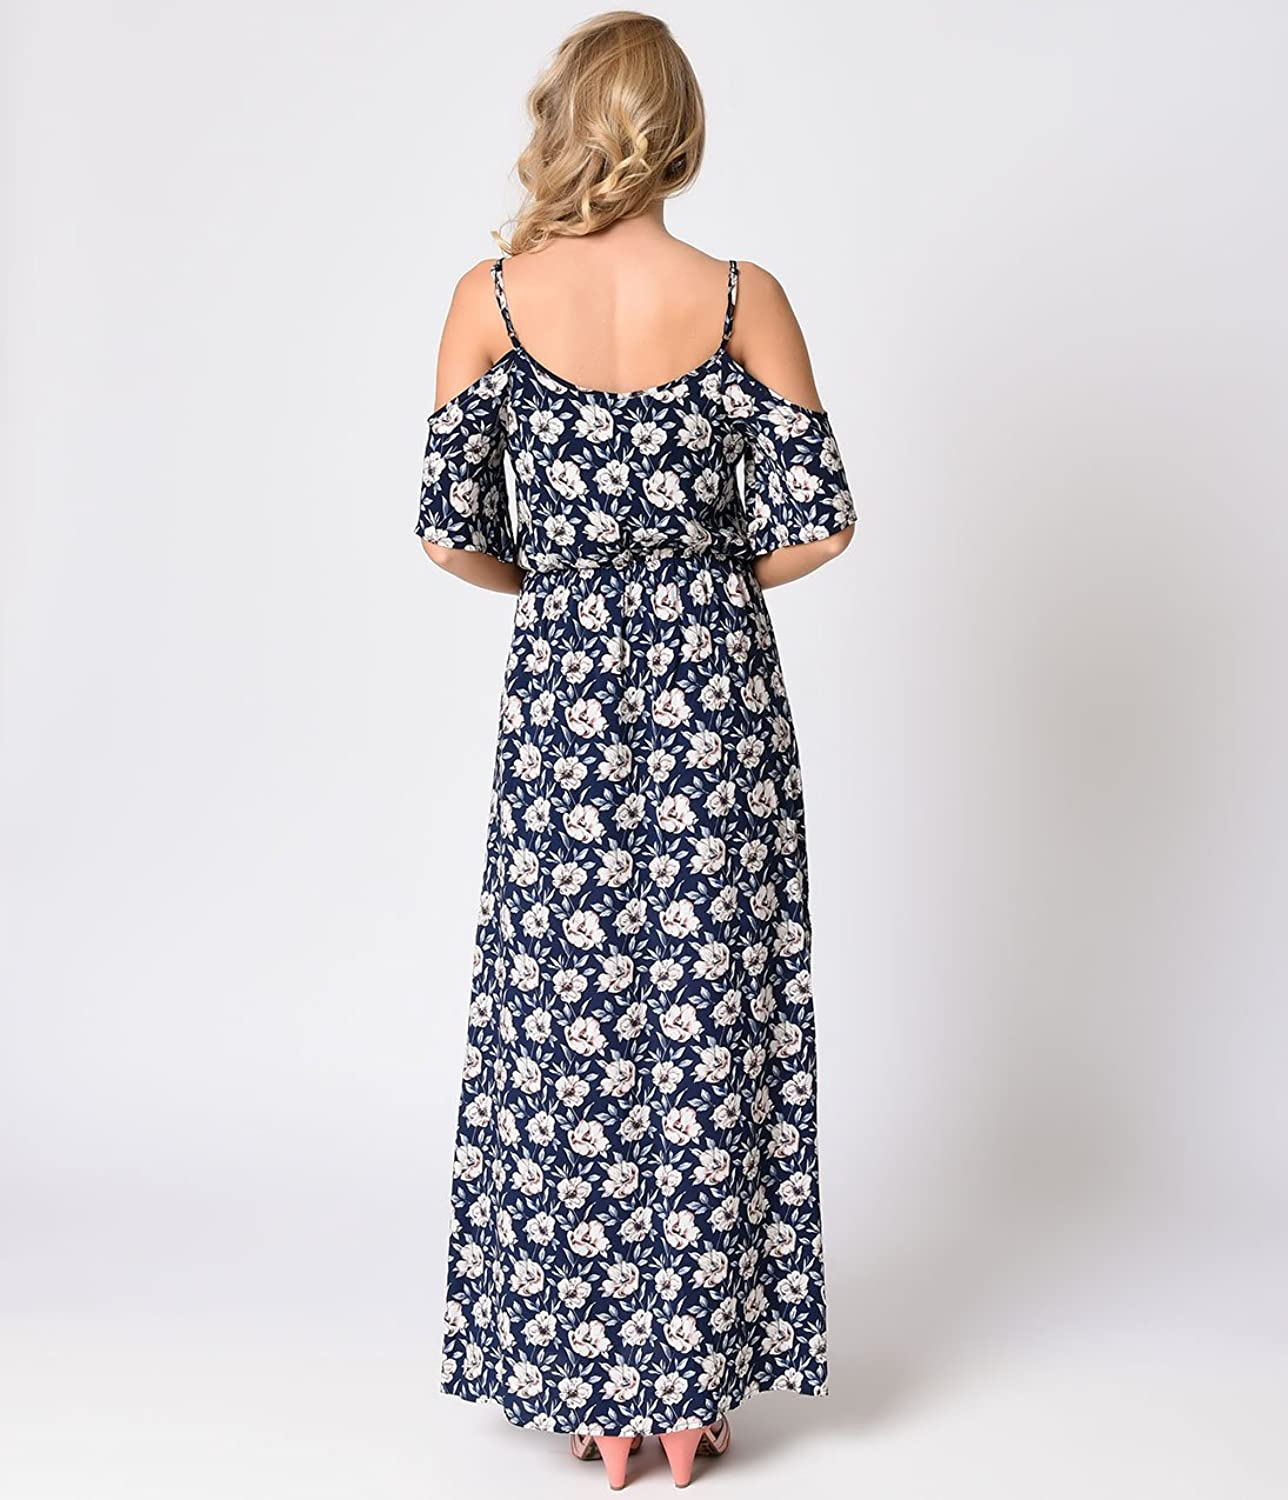 1970s Retro Style Navy Floral Cold Shoulder Maxi Dress